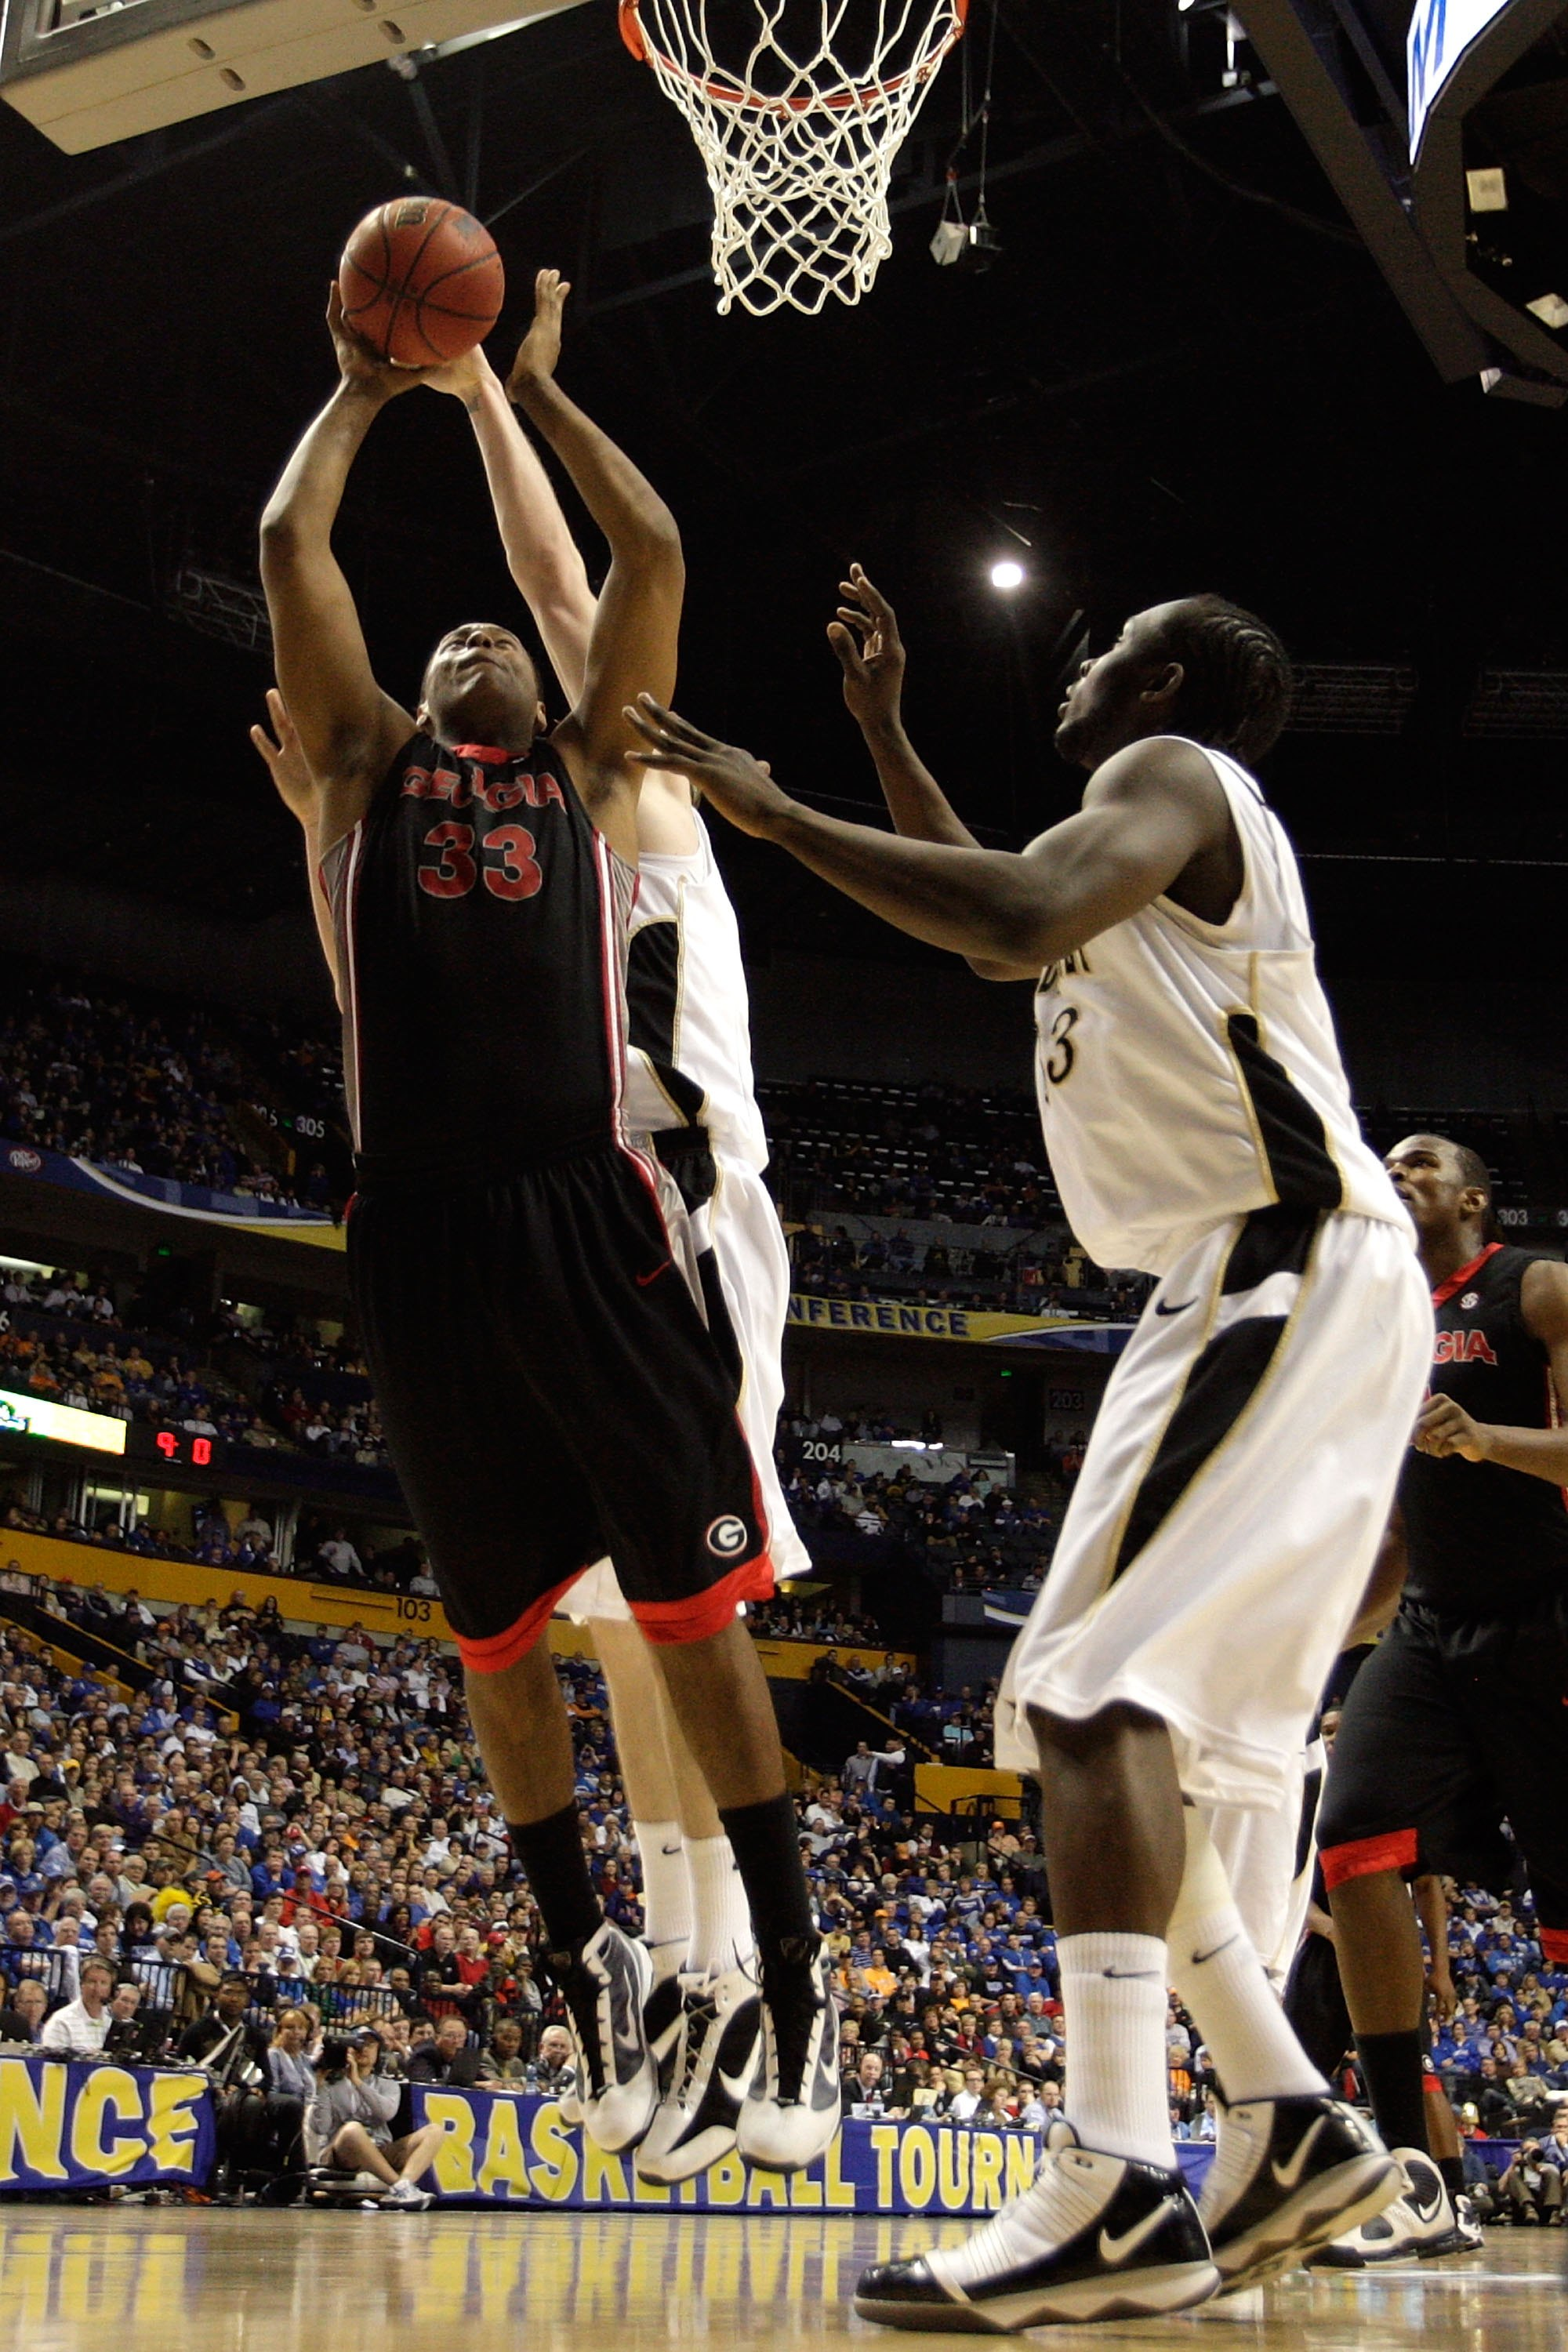 NASHVILLE, TN - MARCH 12:  Trey Thompkins #33 of the Georgia Bulldogs goes up for a shot attempt the Vanderbilt Commodores during the quarterfinals of the SEC Men's Basketball Tournament at the Bridgestone Arena on March 12, 2010 in Nashville, Tennessee.